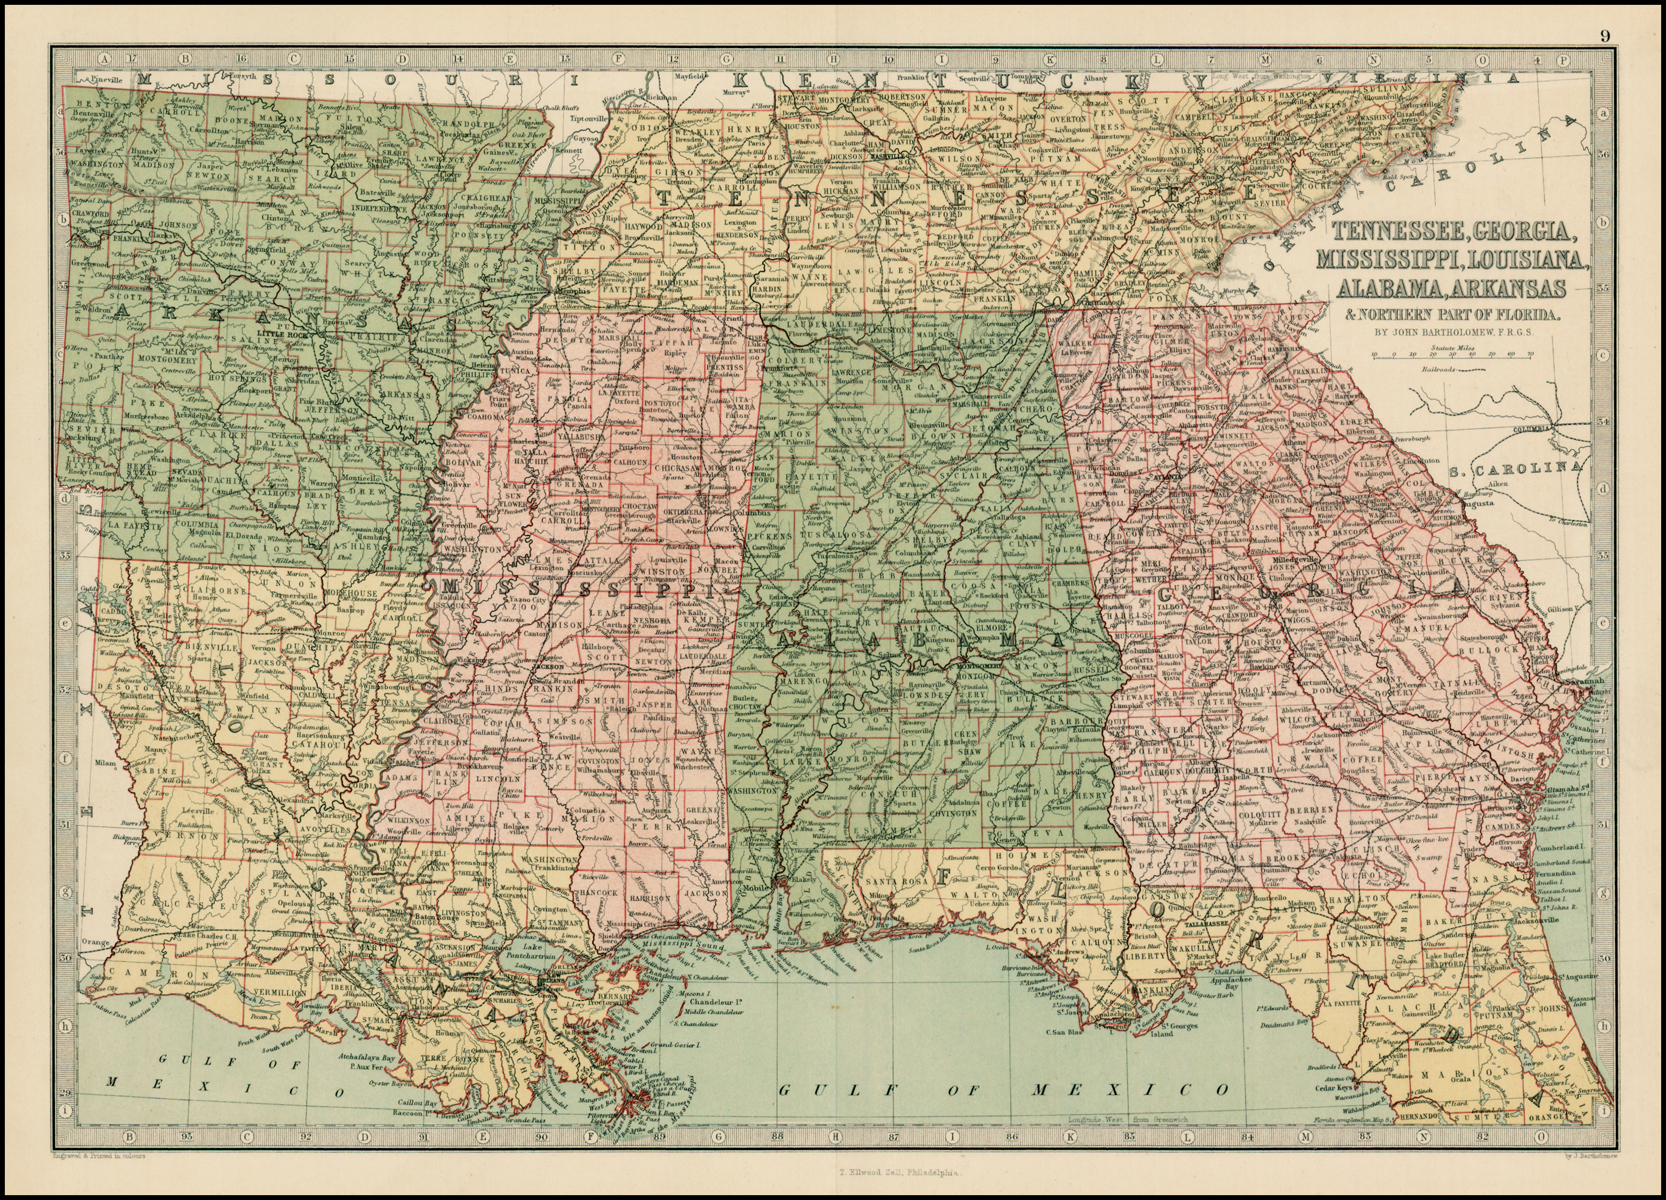 map of sw georgia, map of northwest ga, map of southern montana, map tuscaloosa al, map of georgia geology, map of counties of georgia, map tennessee and alabama, county map georgia and alabama, map of georgia alabama line, map of lagrange georgia, map mississippi and alabama, on map of alabama and georgia